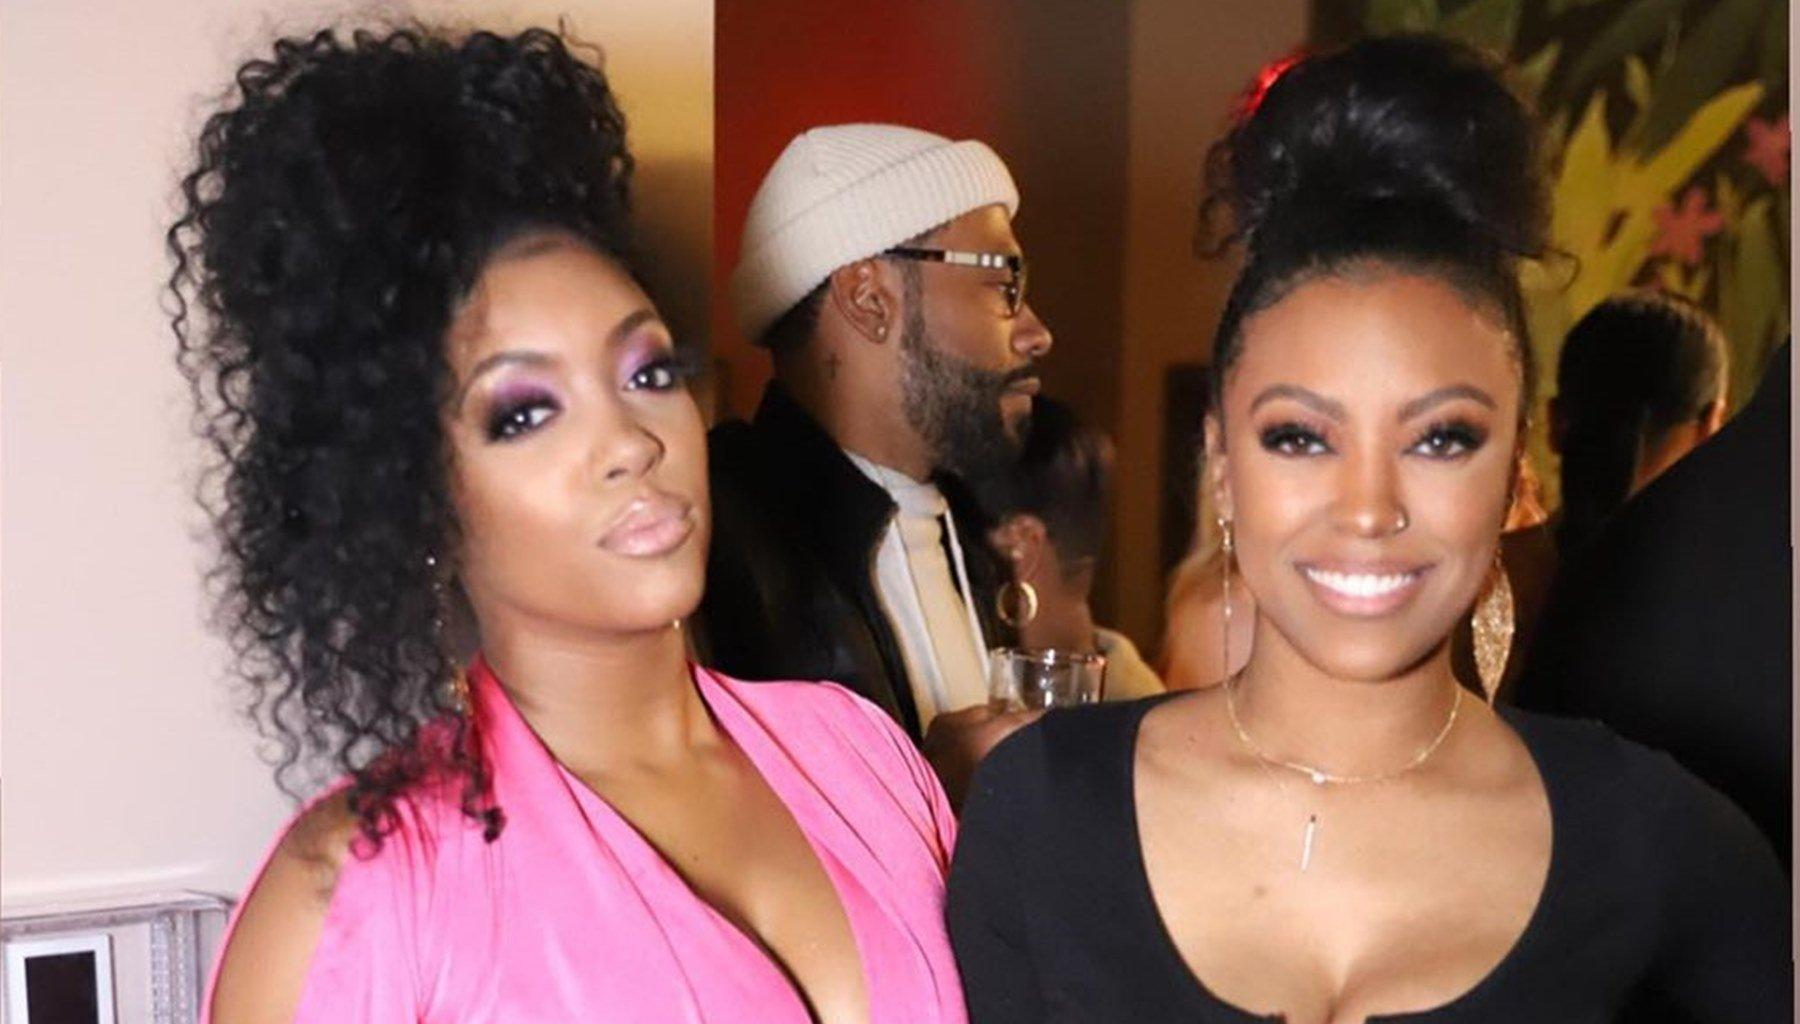 Porsha Williams Shares Footage From Her And Her Sister, Lauren Williams' Day Out